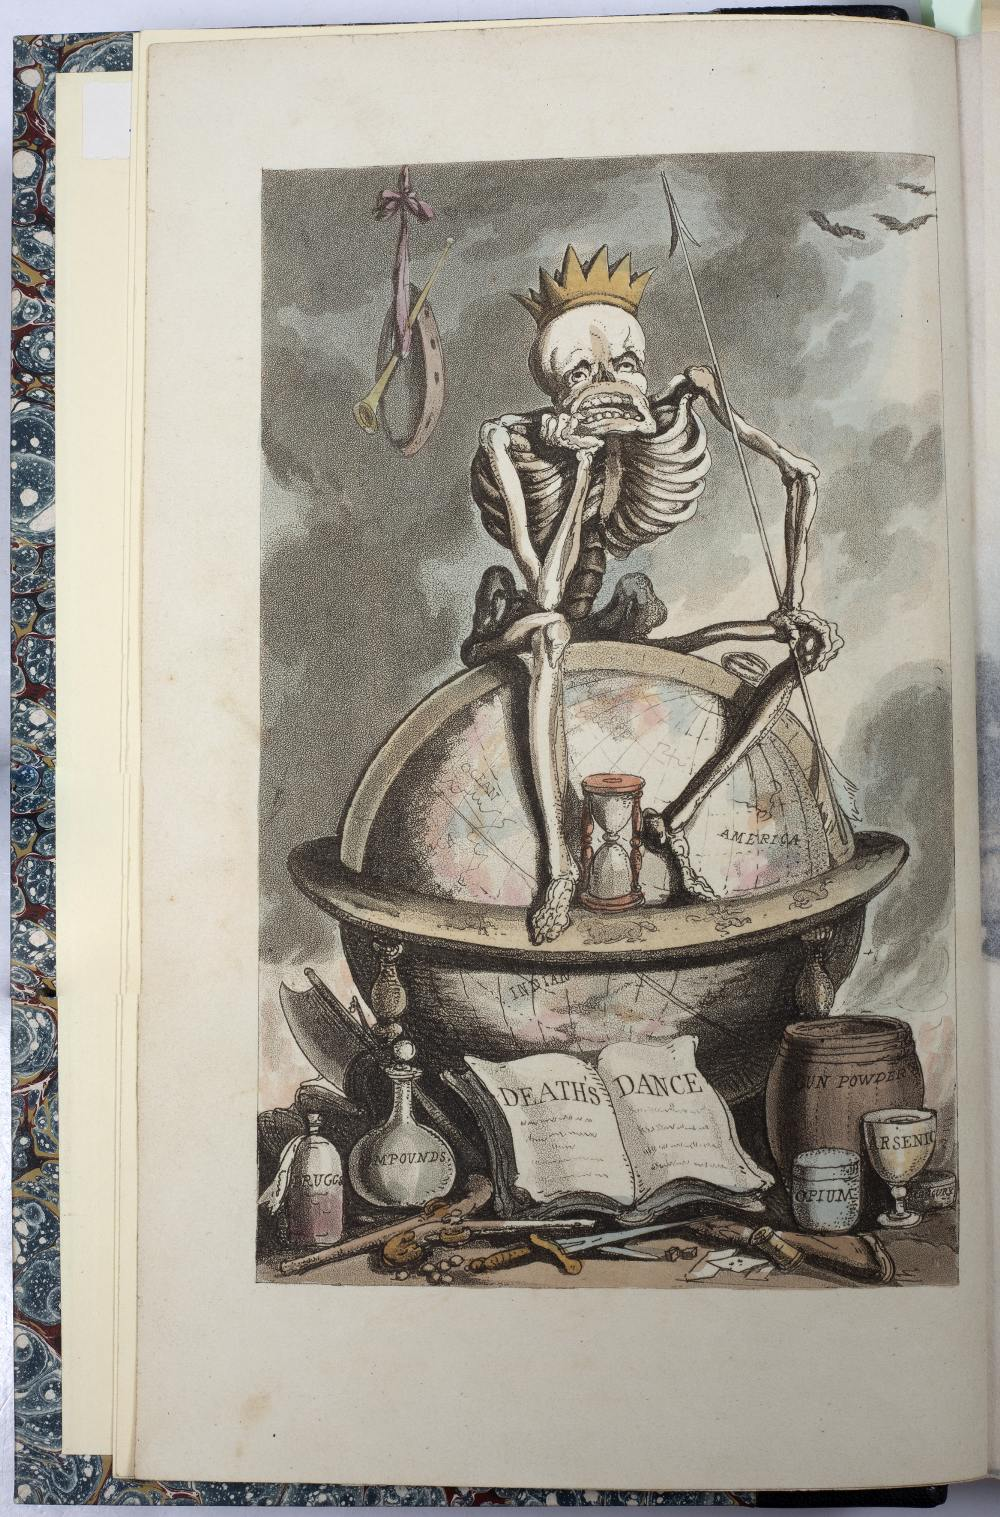 COOMBE, William and ROWLANDSON, Thomas, Illus. 'The English Dance of Death'. 2 Vols. Ackermann, - Image 2 of 5